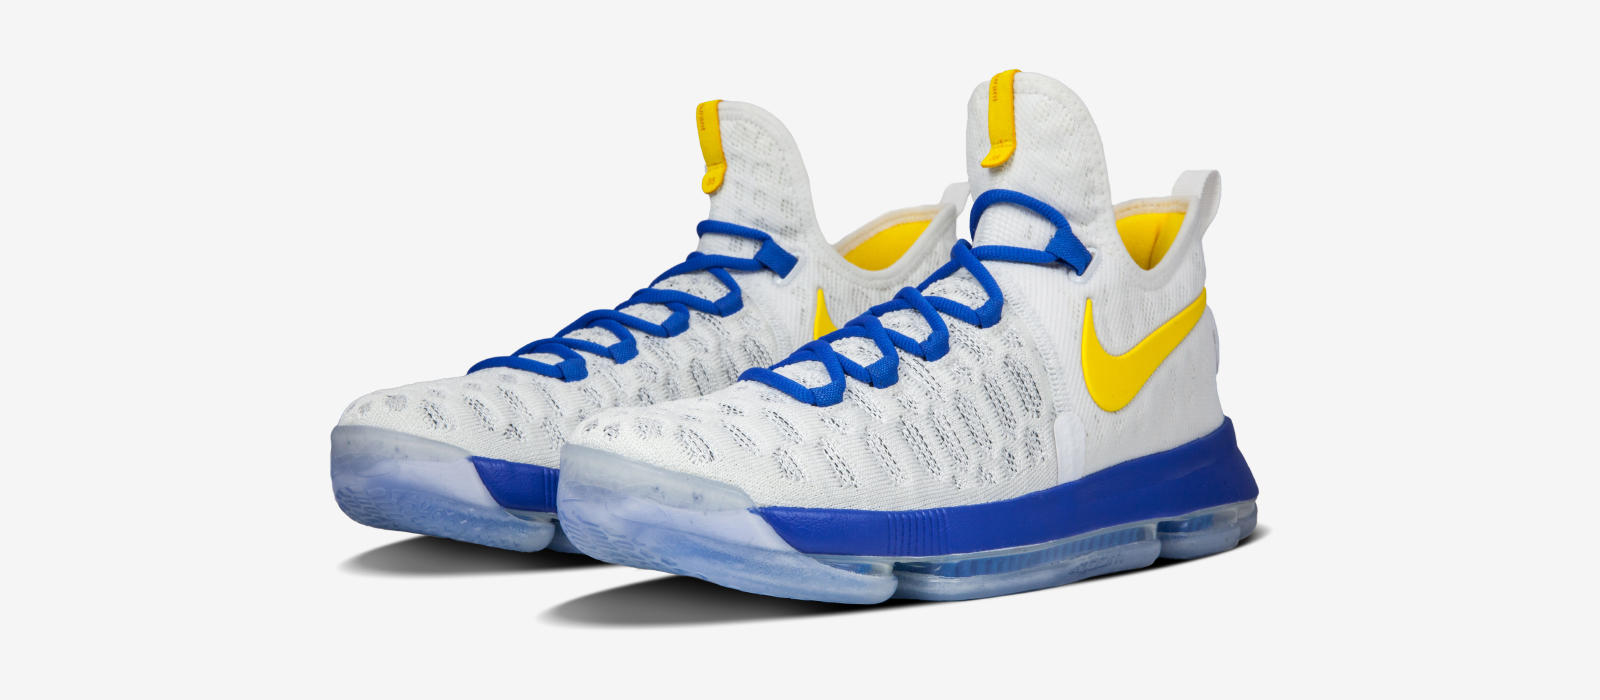 KD9 NIKEiD Limited Edition